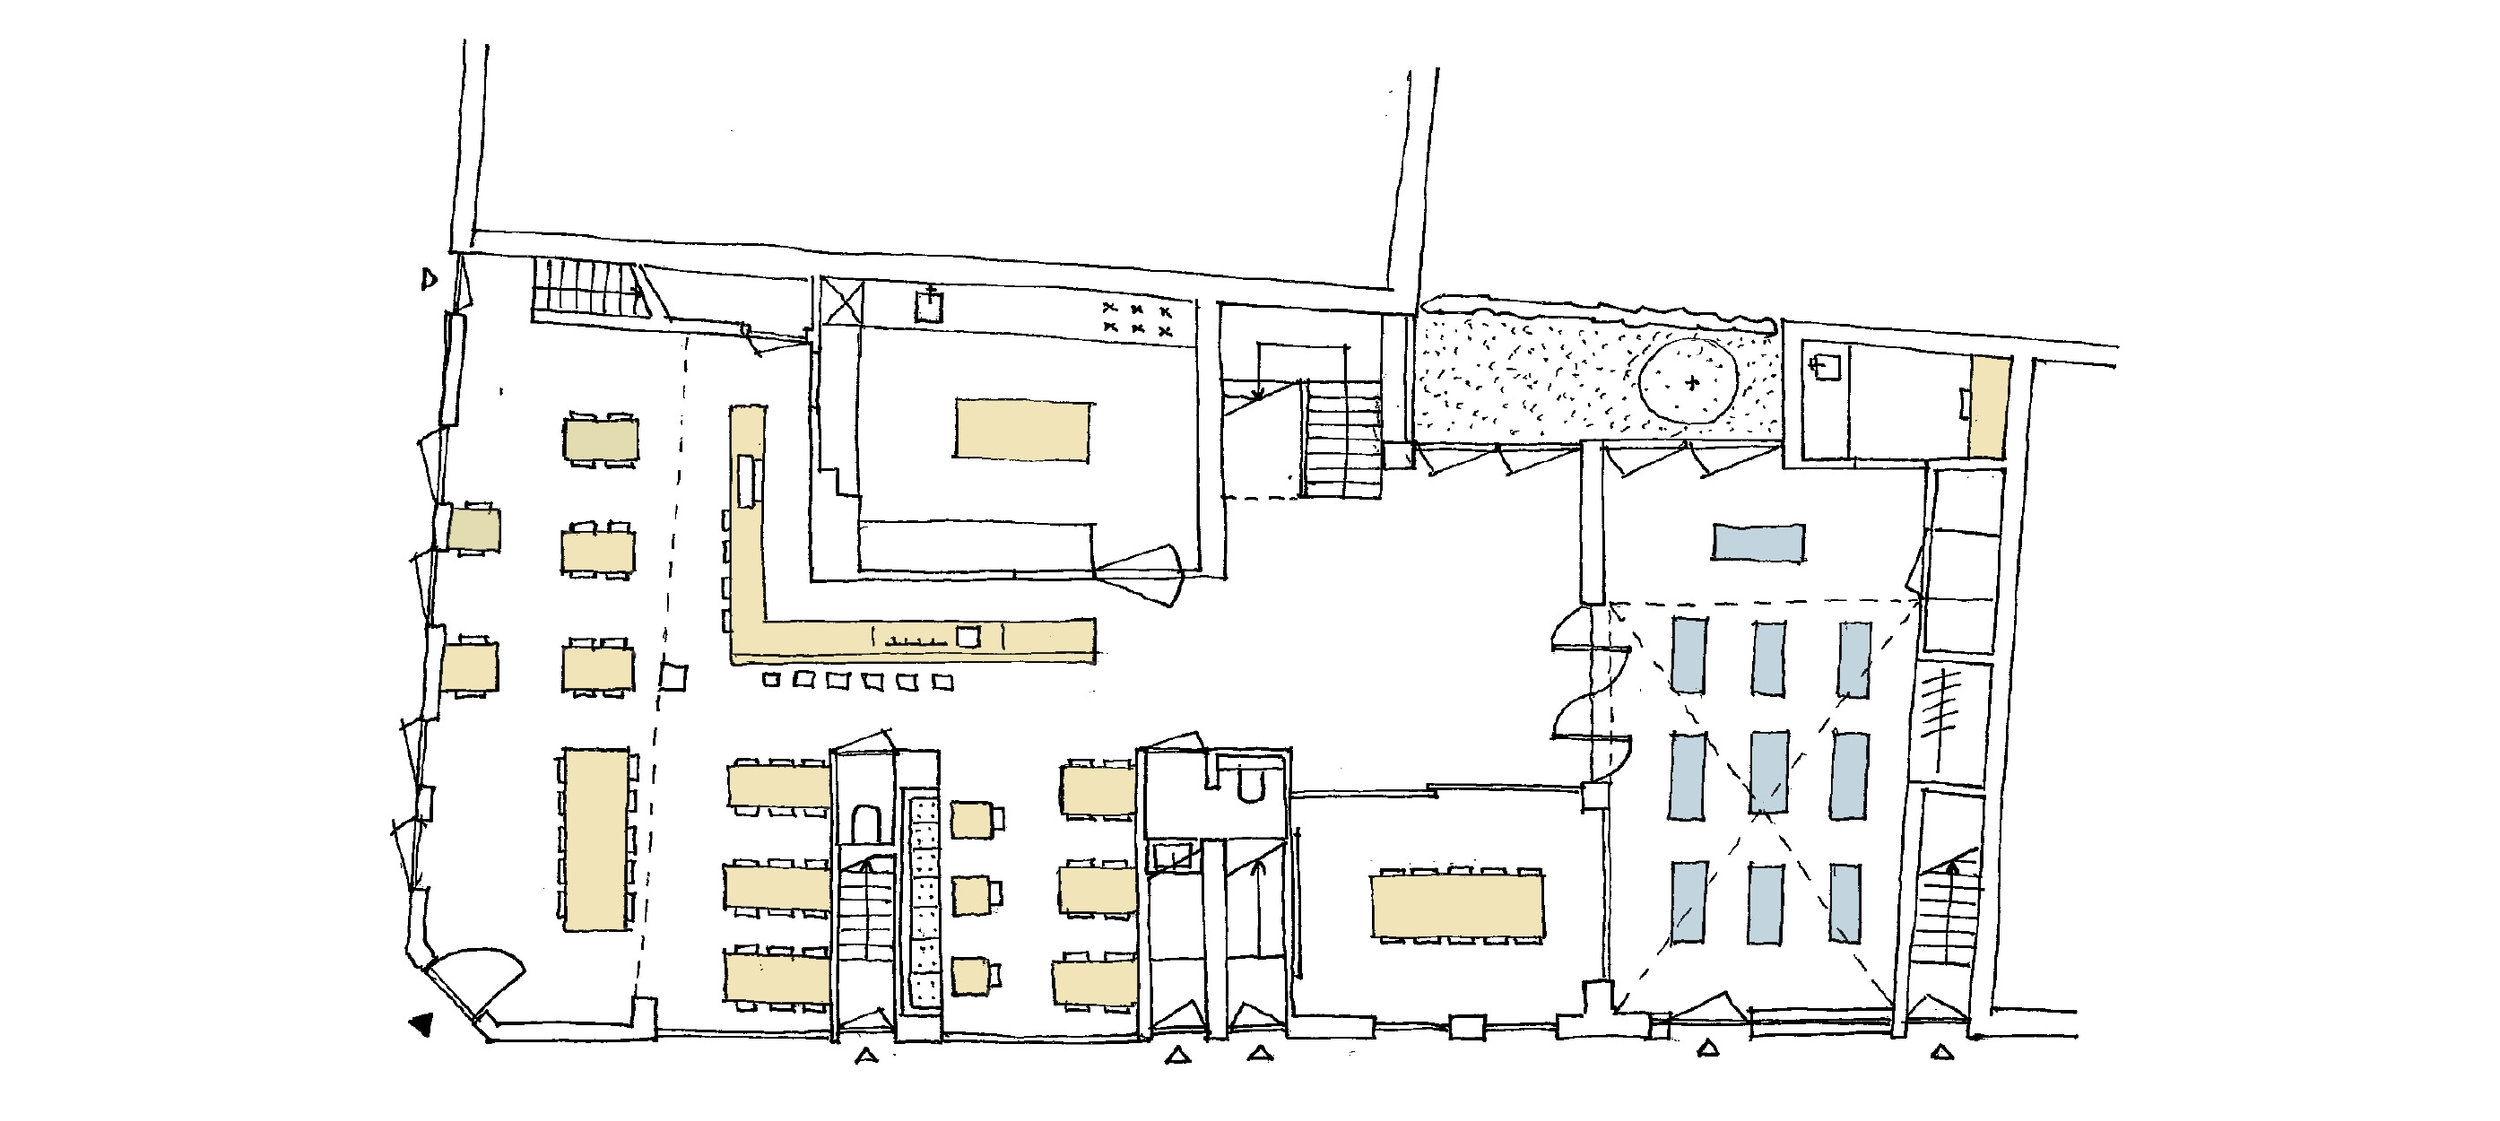 ground floor plan of the restaurant with the public area on the left and the meeting rooms and multifunctional space with the patio on the right